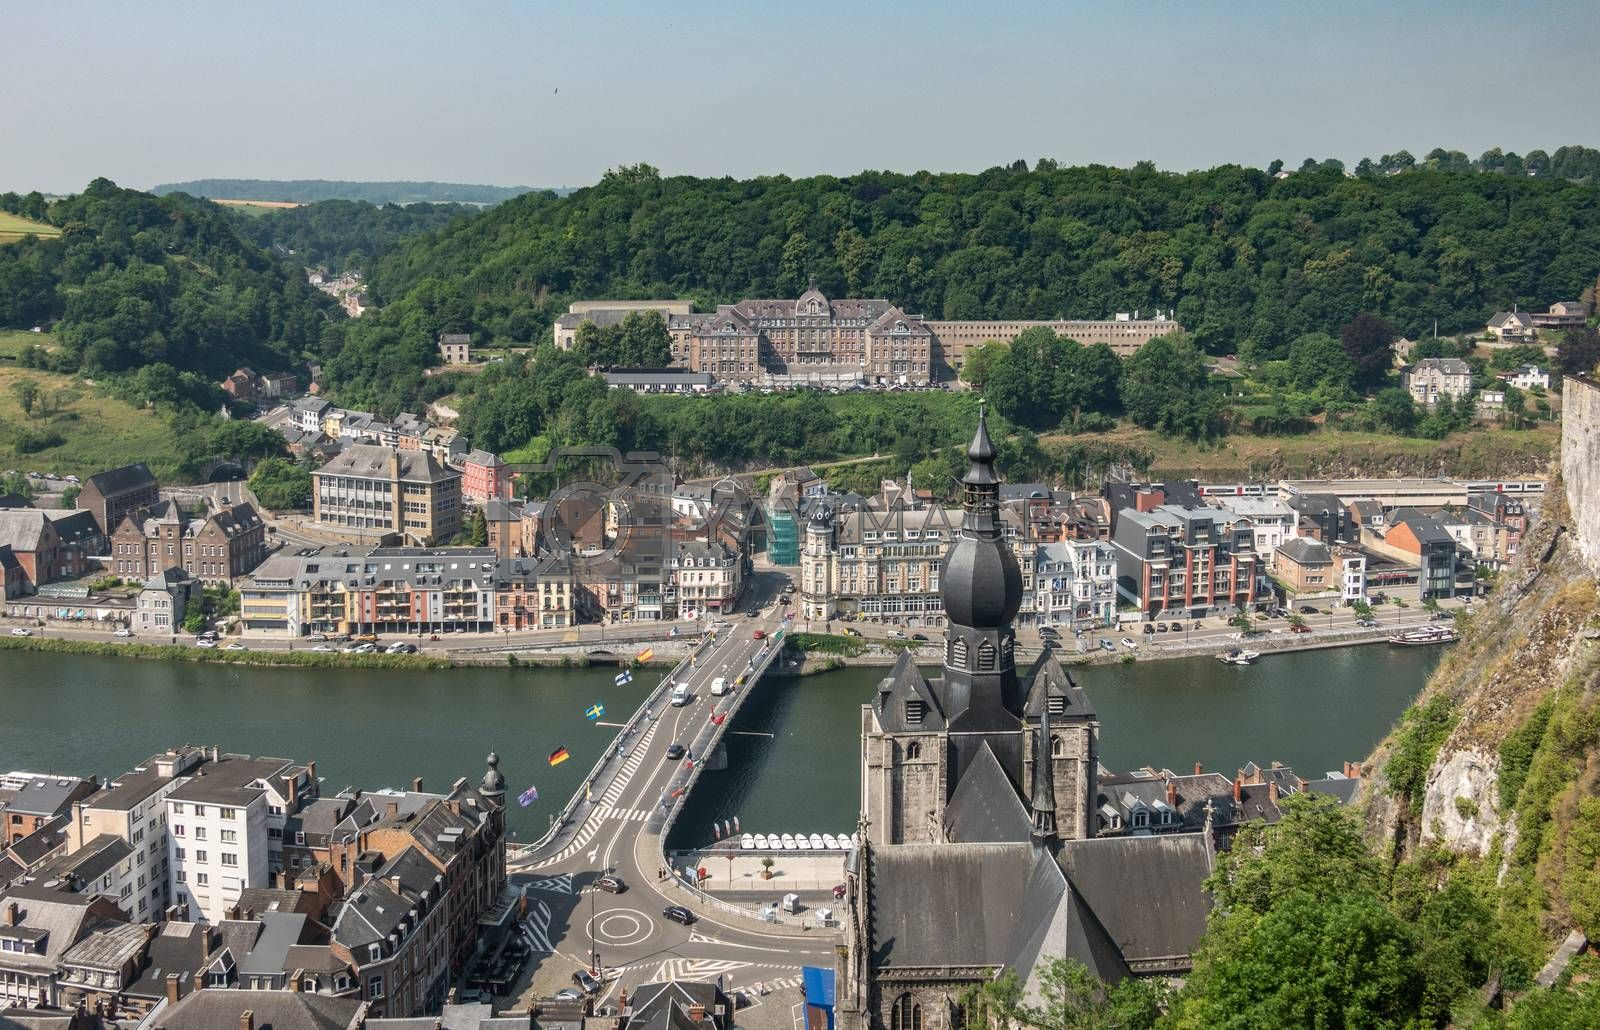 Dinant, Belgium - June 26, 2019: Seen from Citadelle. Large building on top is College Notre Dame de Bellevue, school system from primary to high school. Forests in back. City, river and church